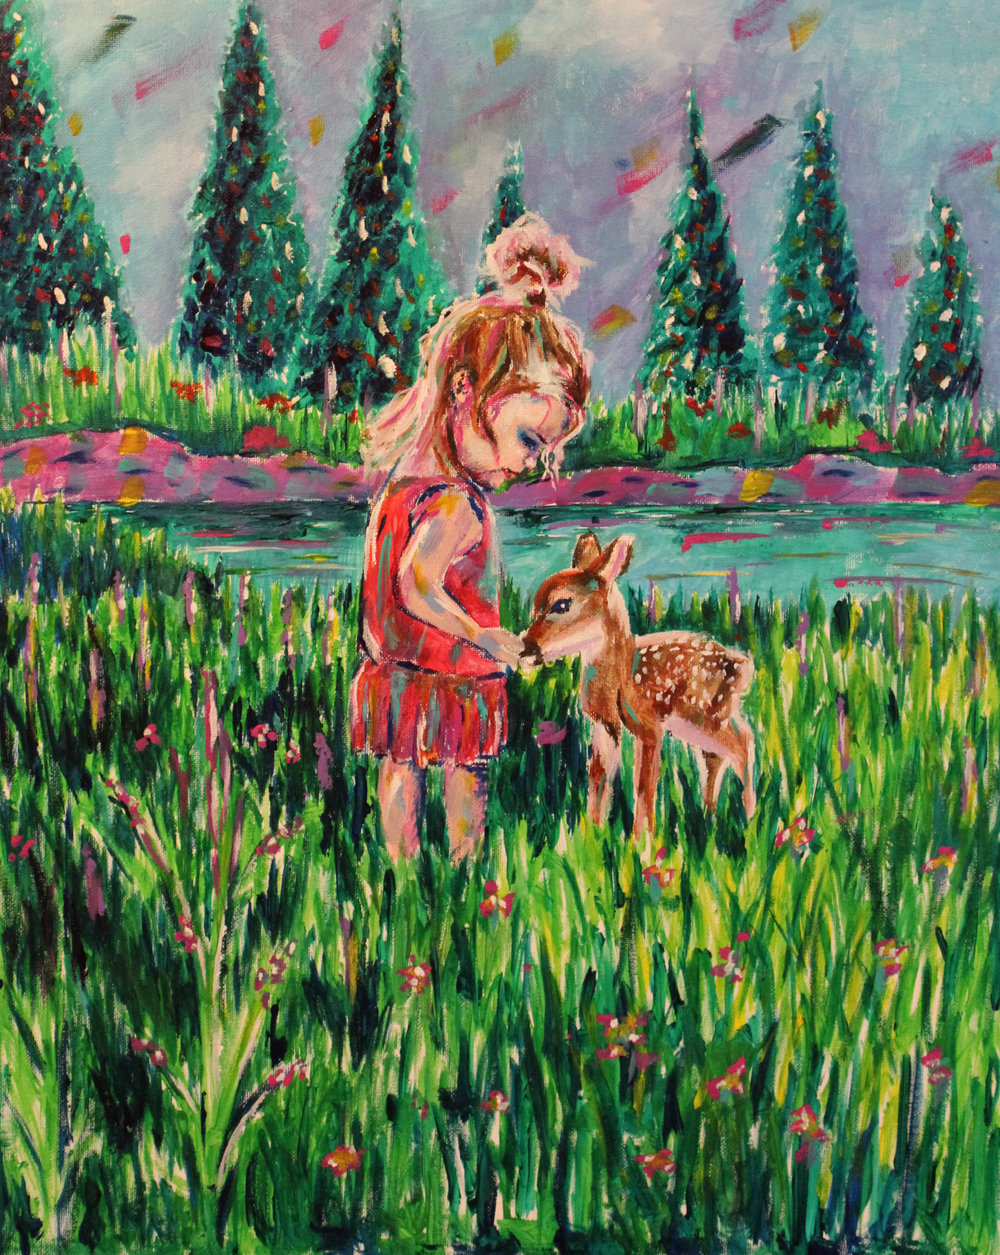 A Girl and Her Fawn - Painting of girl with Fawn by Taylor Wise